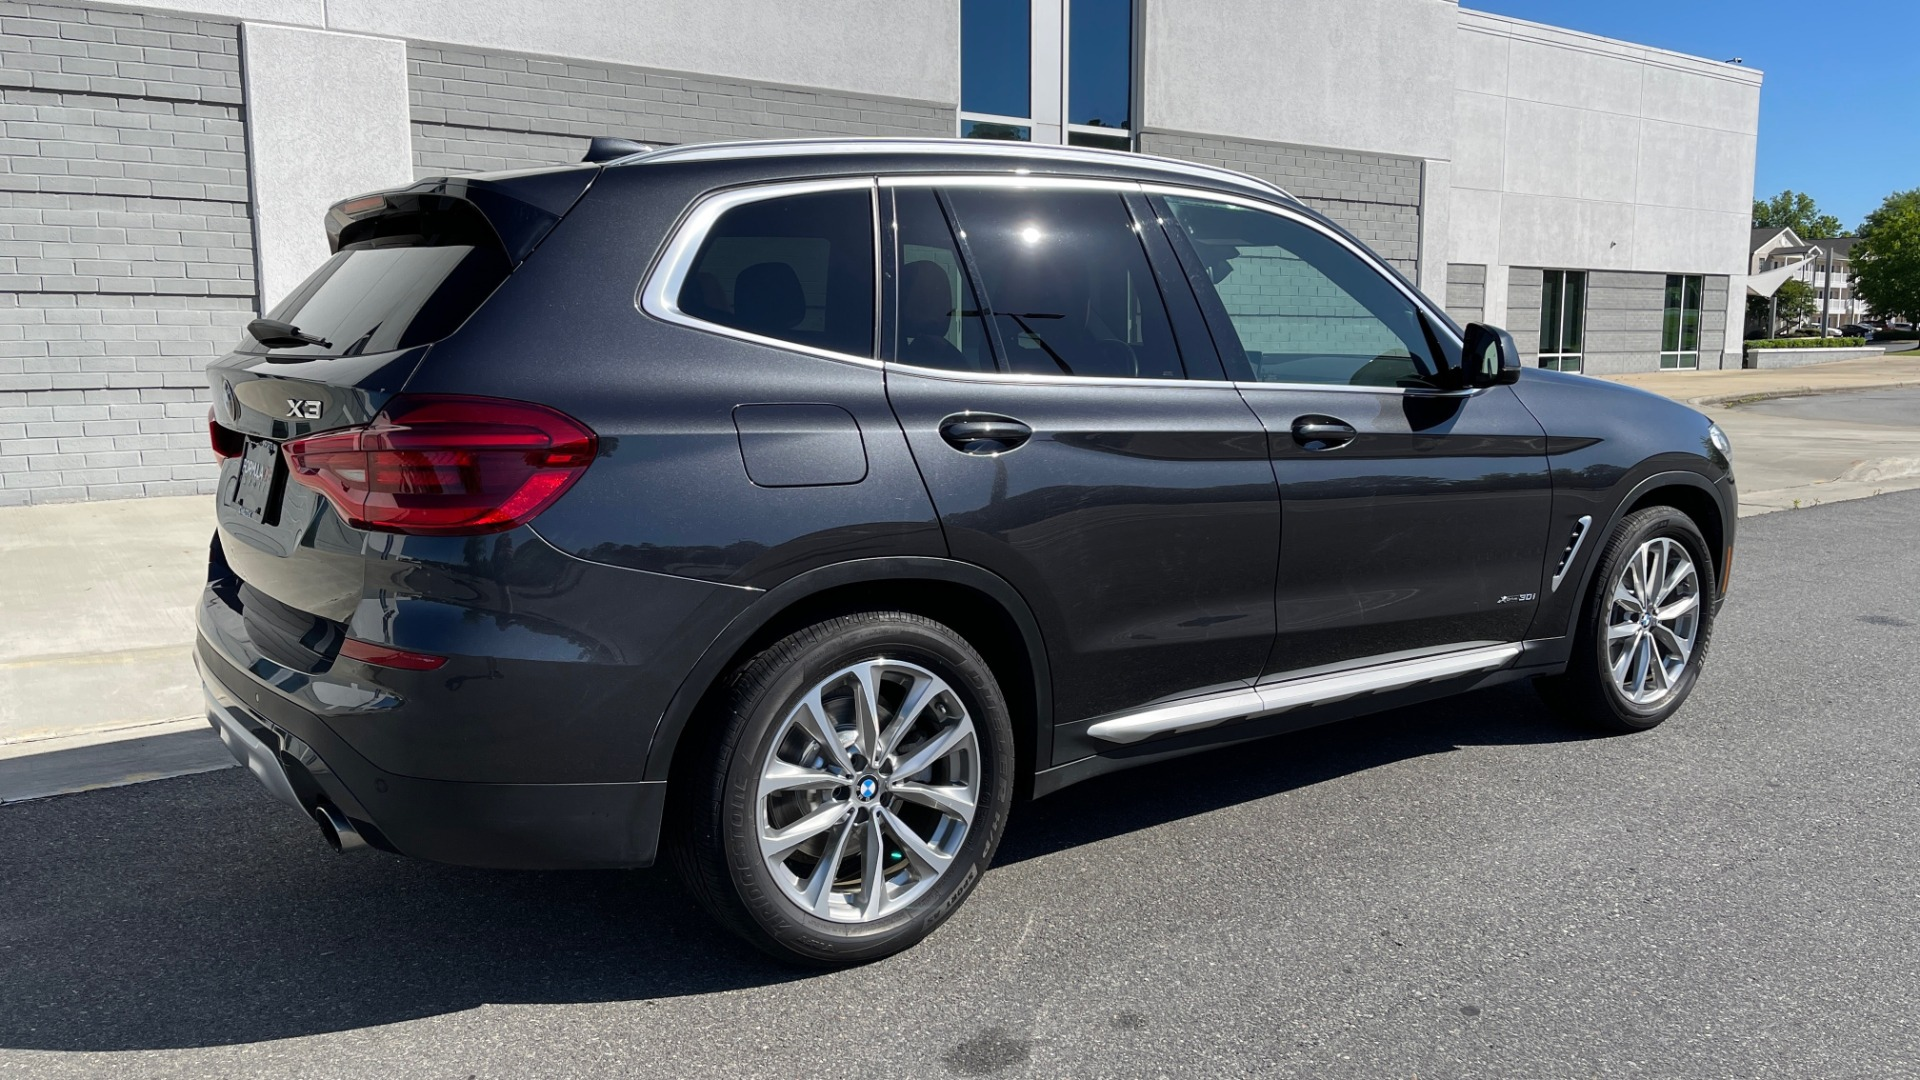 Used 2018 BMW X3 XDRIVE30I PREMIUM / NAV / DRVR ASST PLUS / CONV PKG / SUNROOF / REARVIEW for sale $33,795 at Formula Imports in Charlotte NC 28227 2